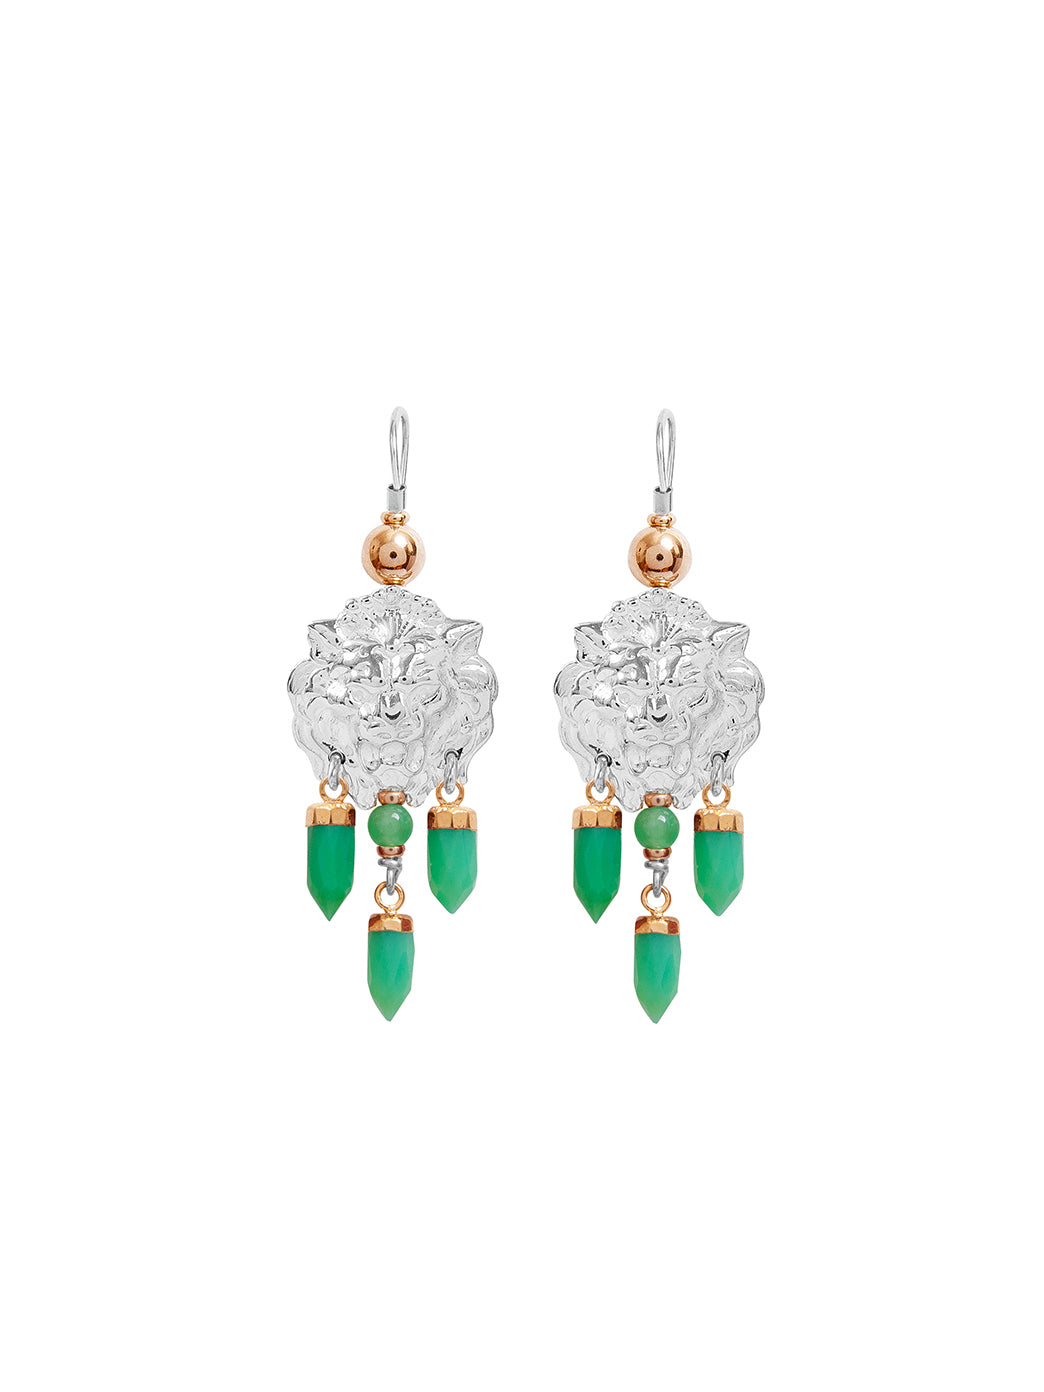 Fiorina Jewellery Taormina Earrings Chrysoprase